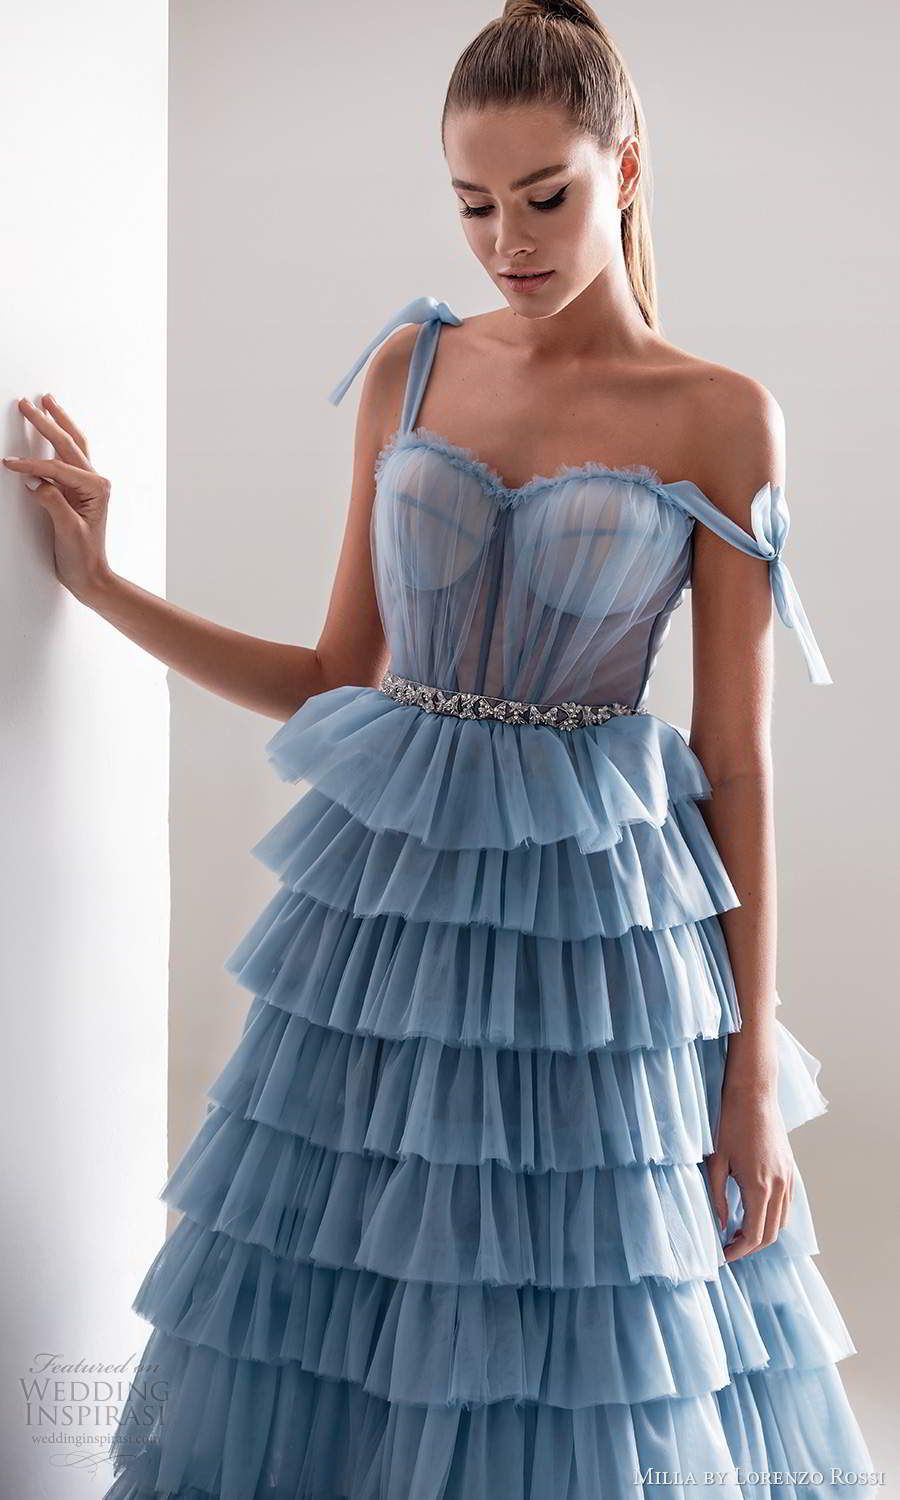 milla by lorenzo rossi 2020 rtw sleeveless straps sweetheart neckline ruched bodicea a line ball gown wedding dress ruffle tier skirt light blue color (10) zv